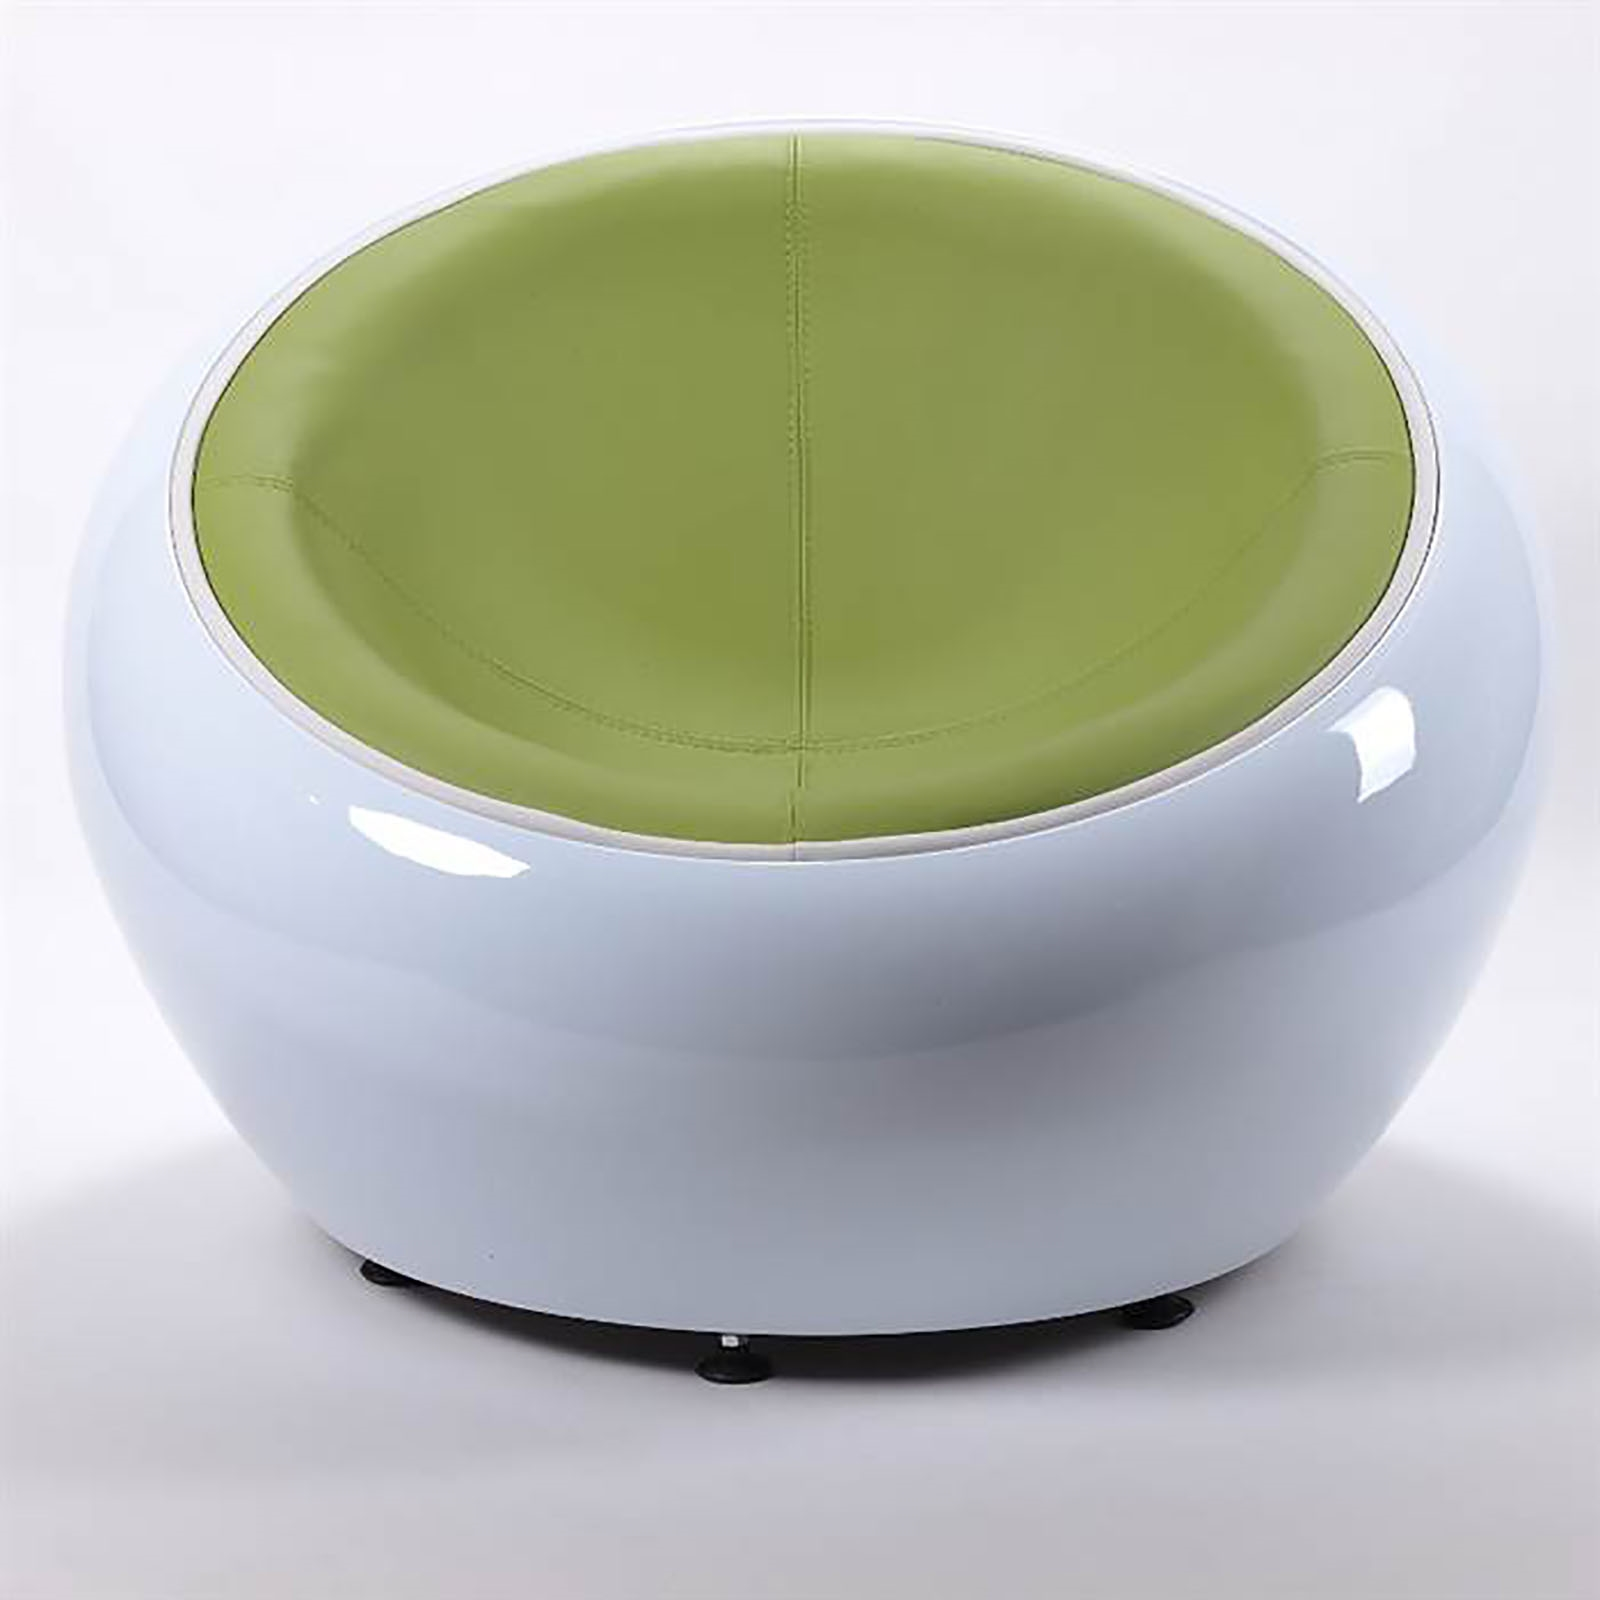 retro lounge egg chair white green bowl lounge design stool shell ebay. Black Bedroom Furniture Sets. Home Design Ideas